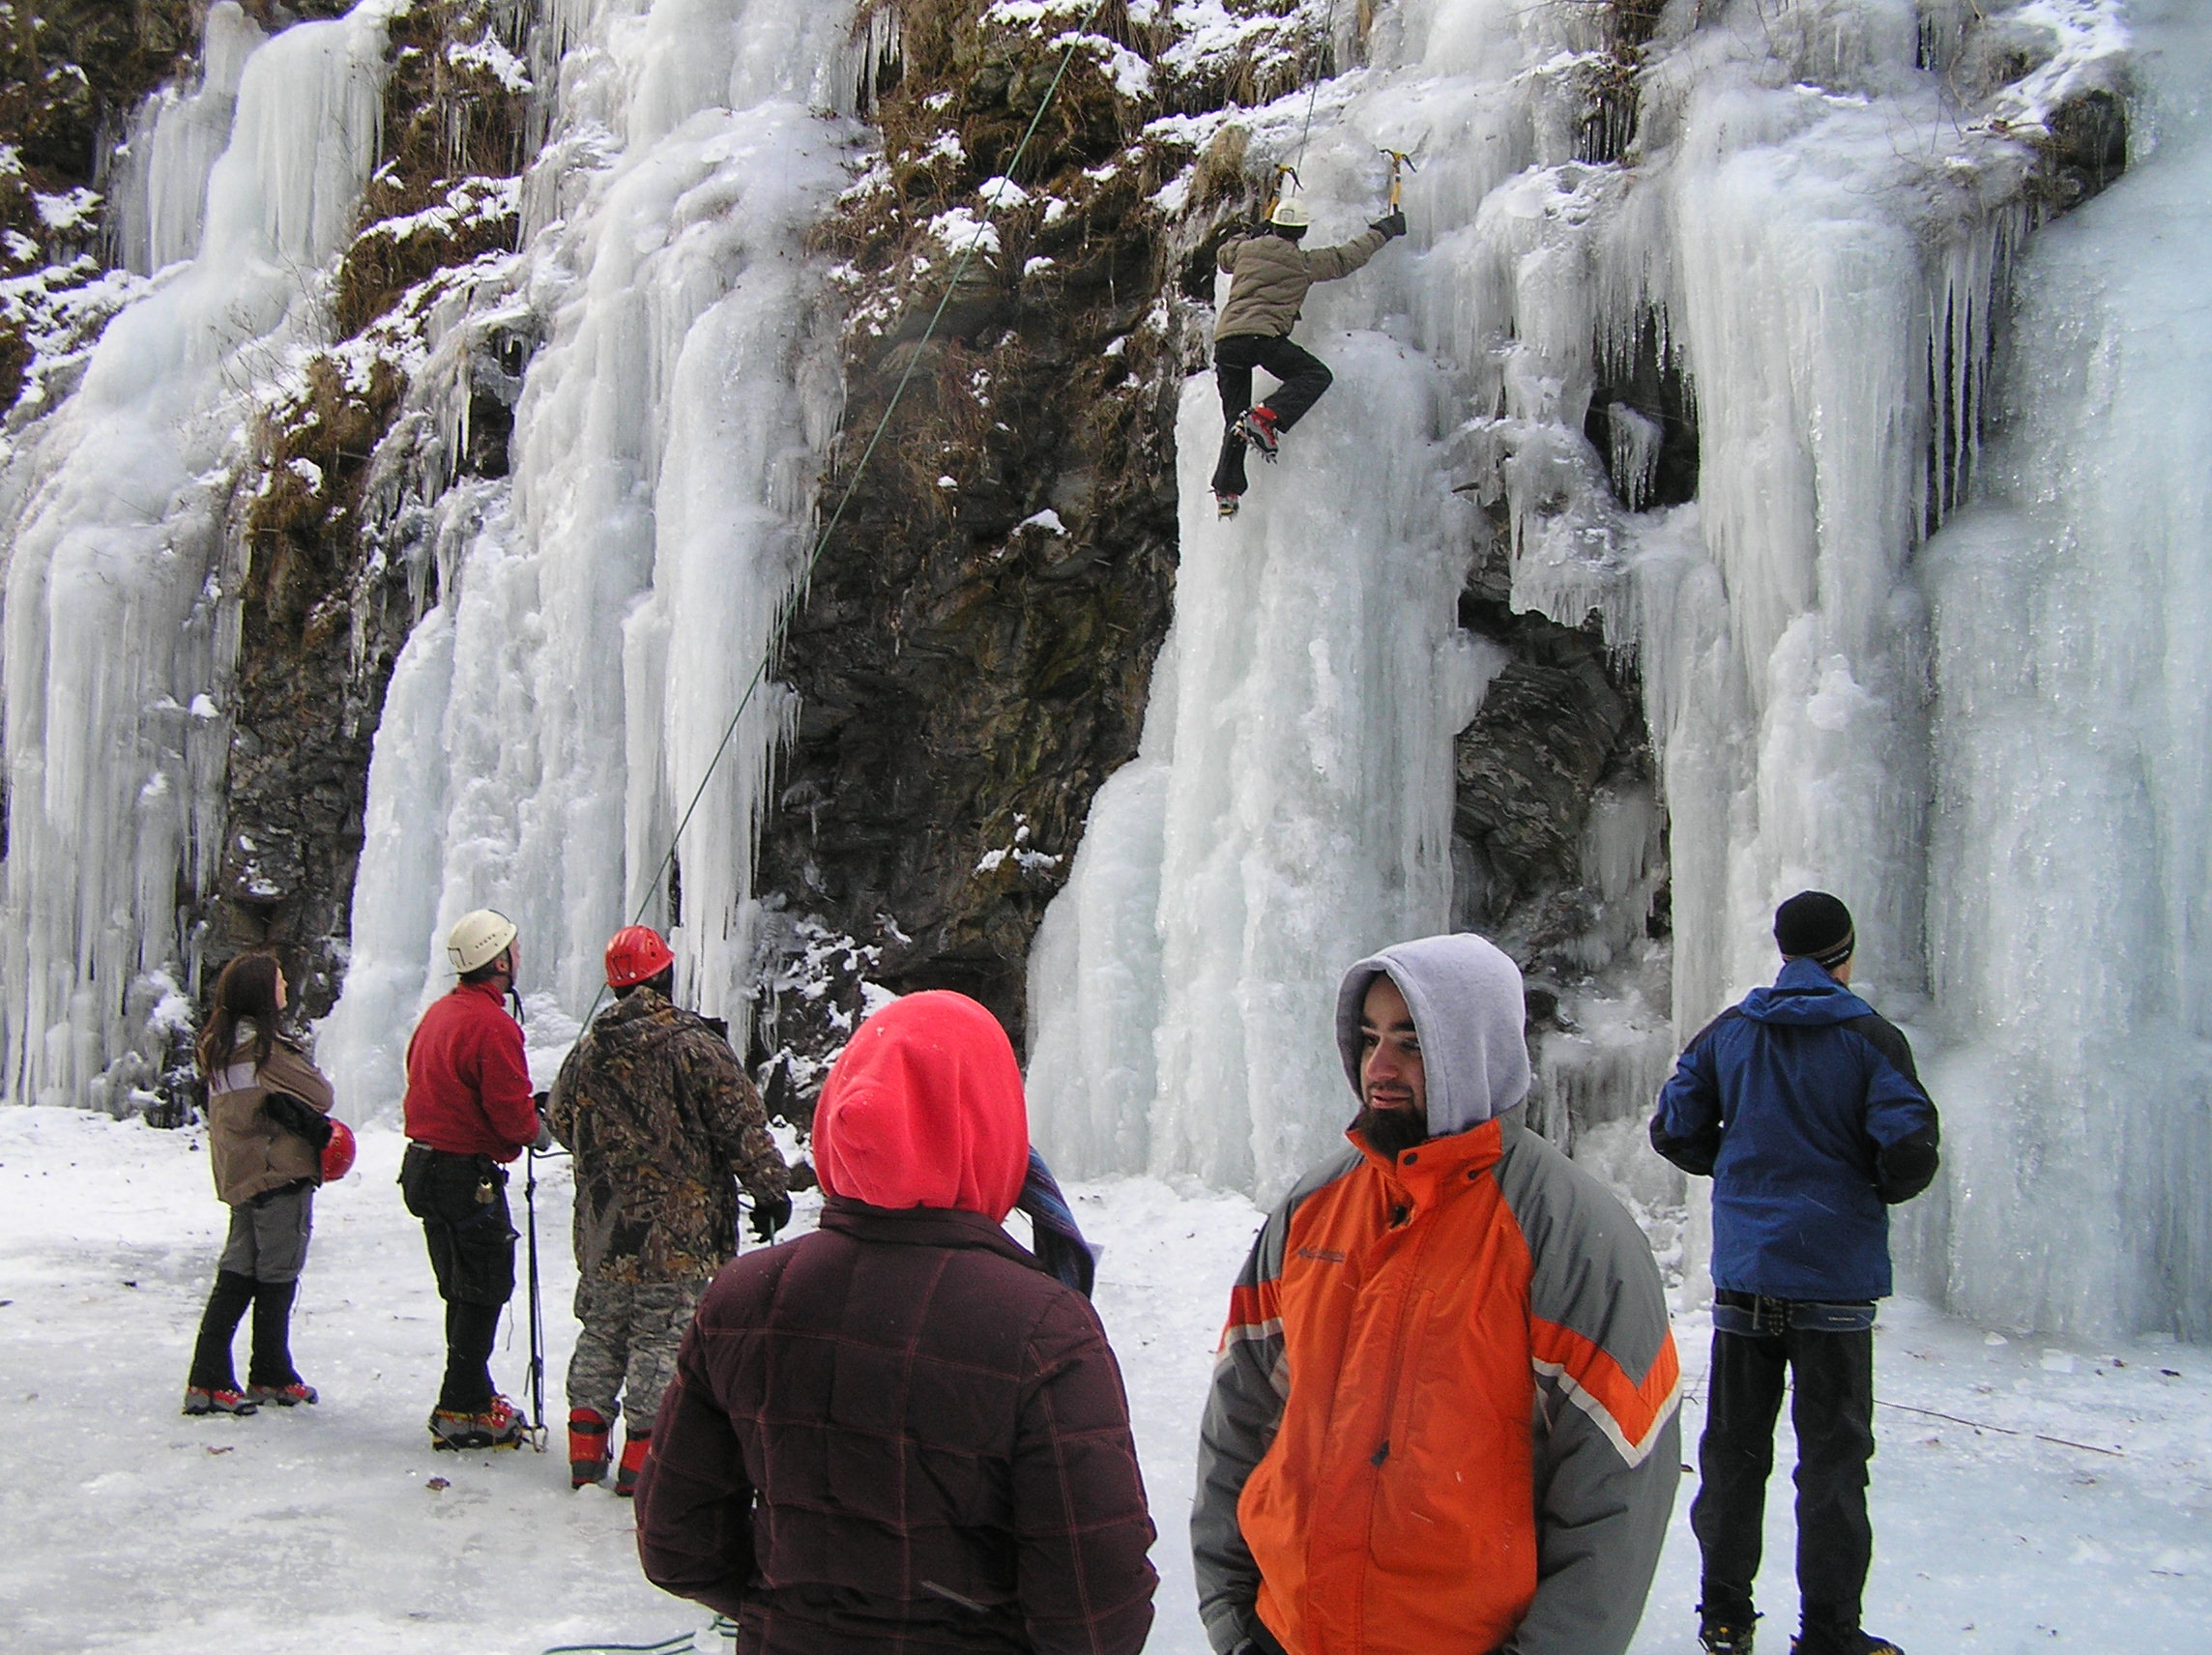 UMass Lowell students learning to ice climb